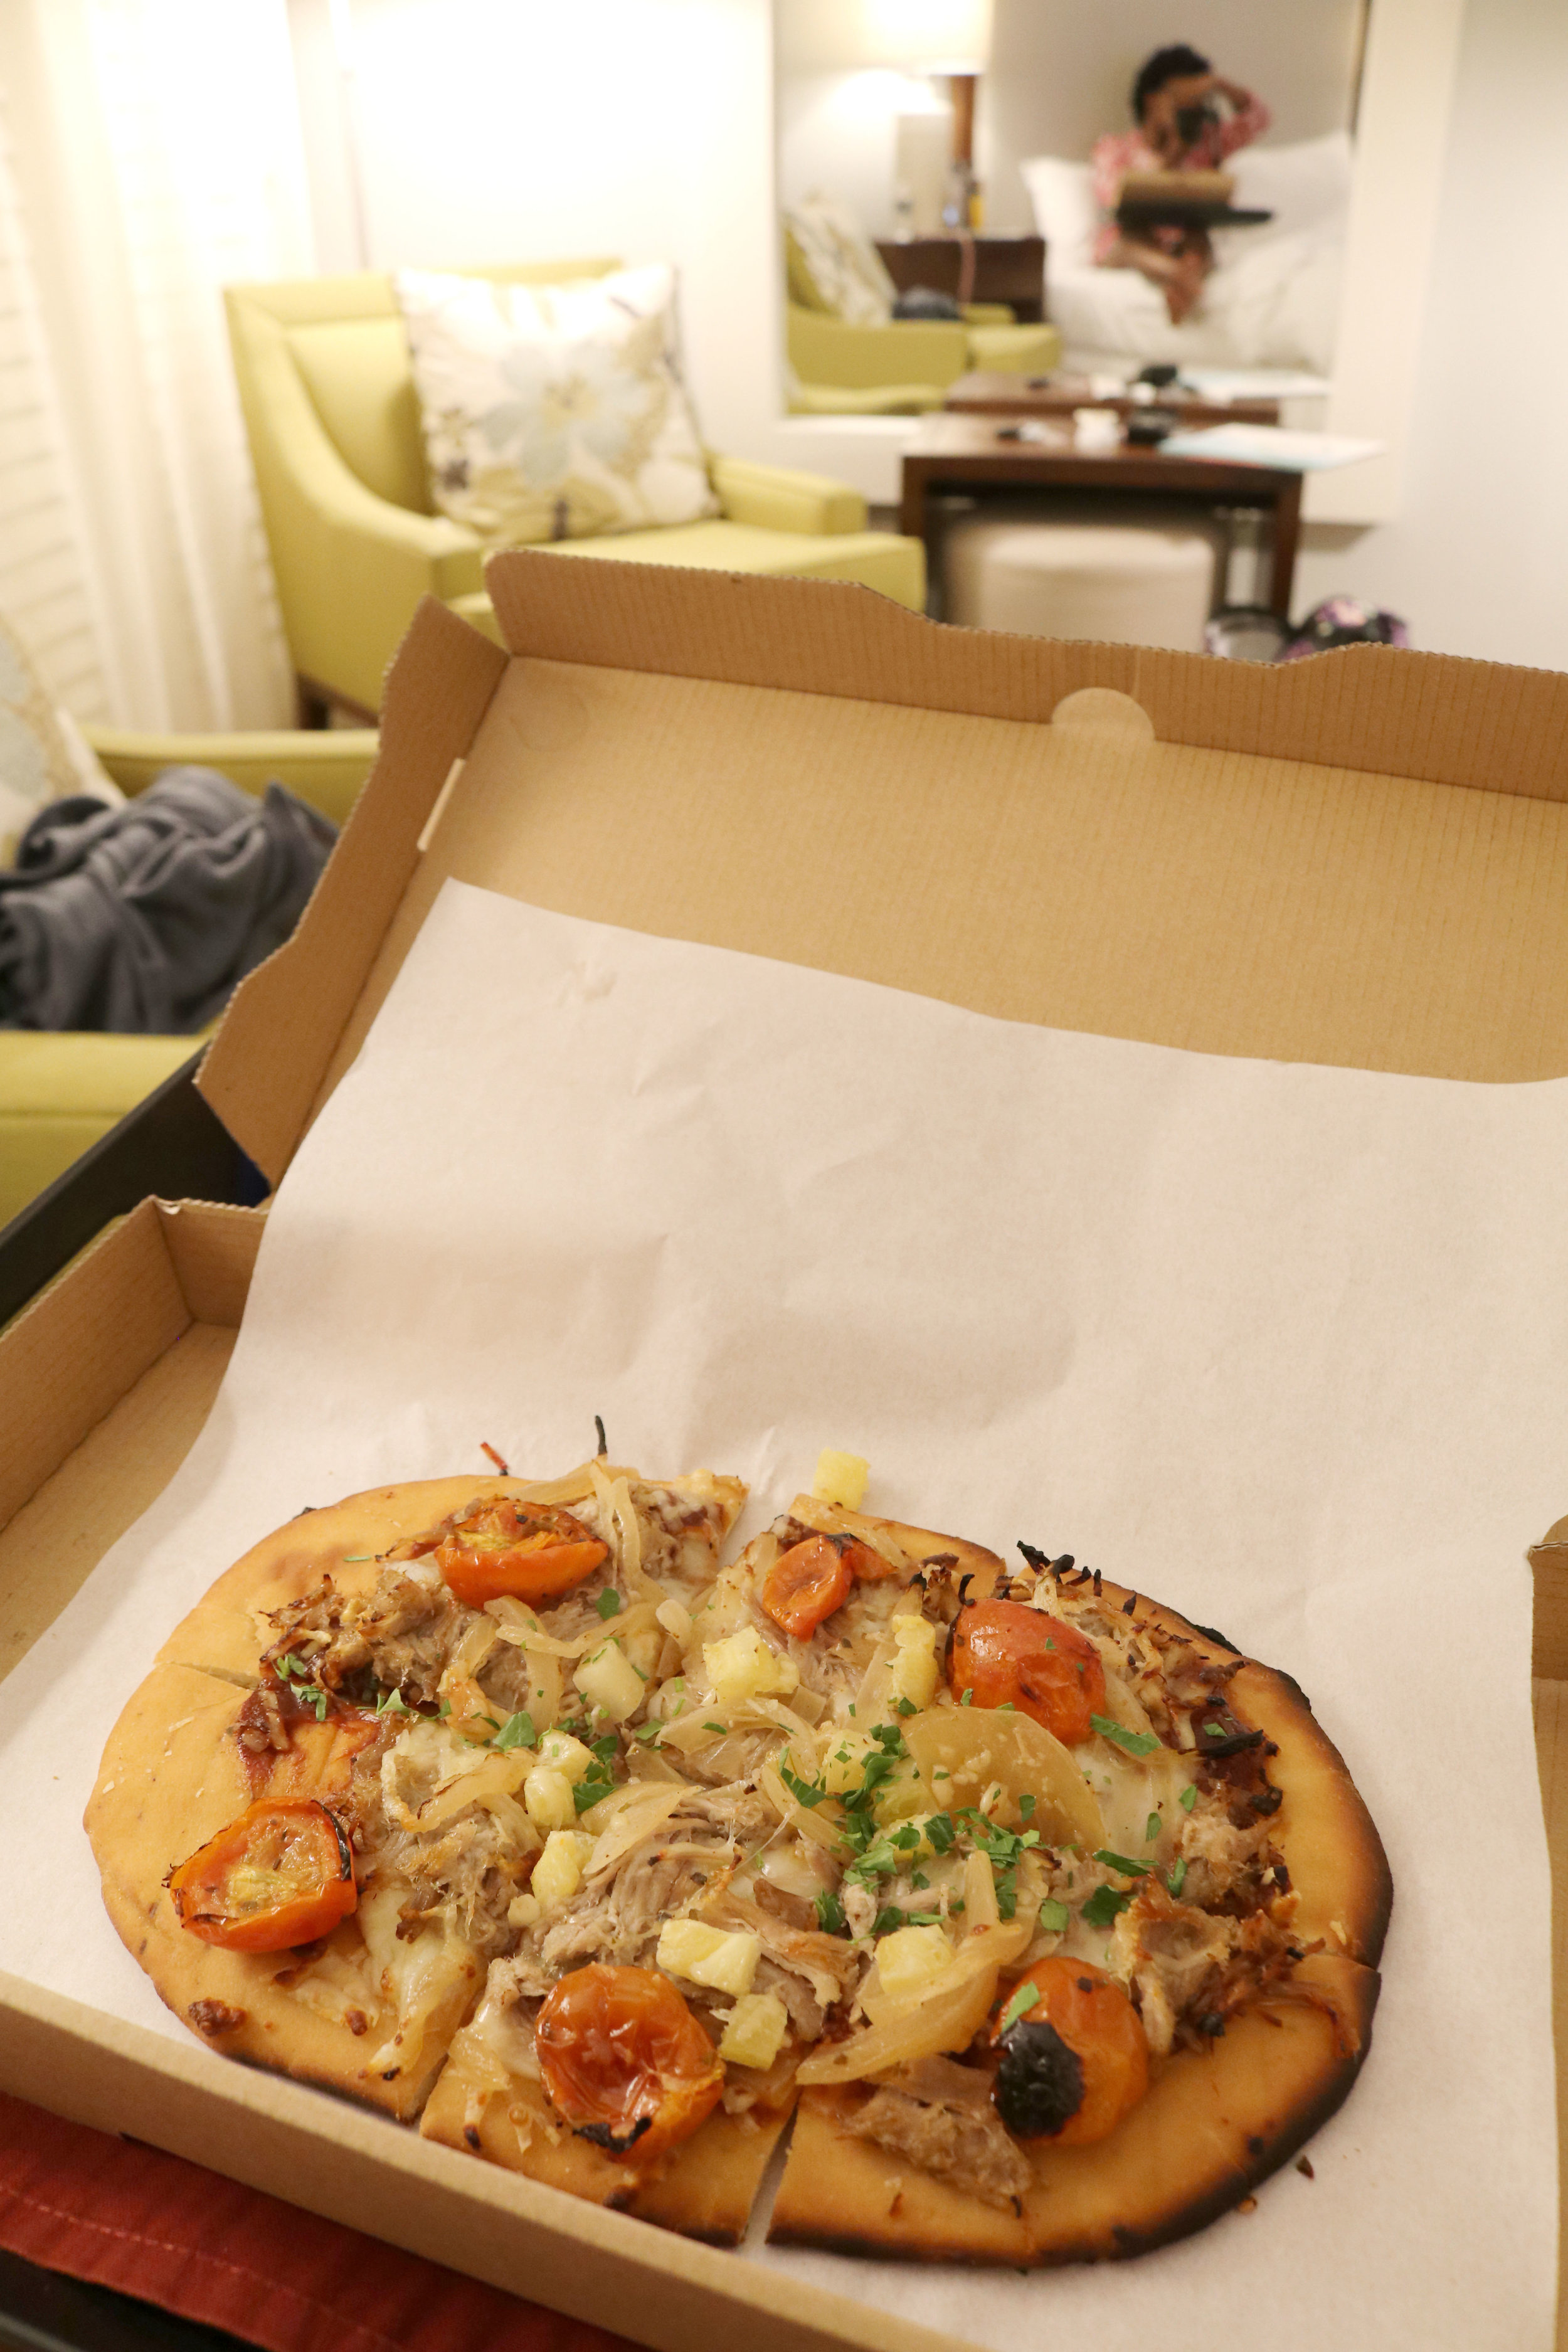 I usually like to try in-room dining at a hotel at least once if the menu looks appetizing. On my first night, I ordered the Hawaiian pizza which was nothing like a chain restaurant and I enjoyed it.